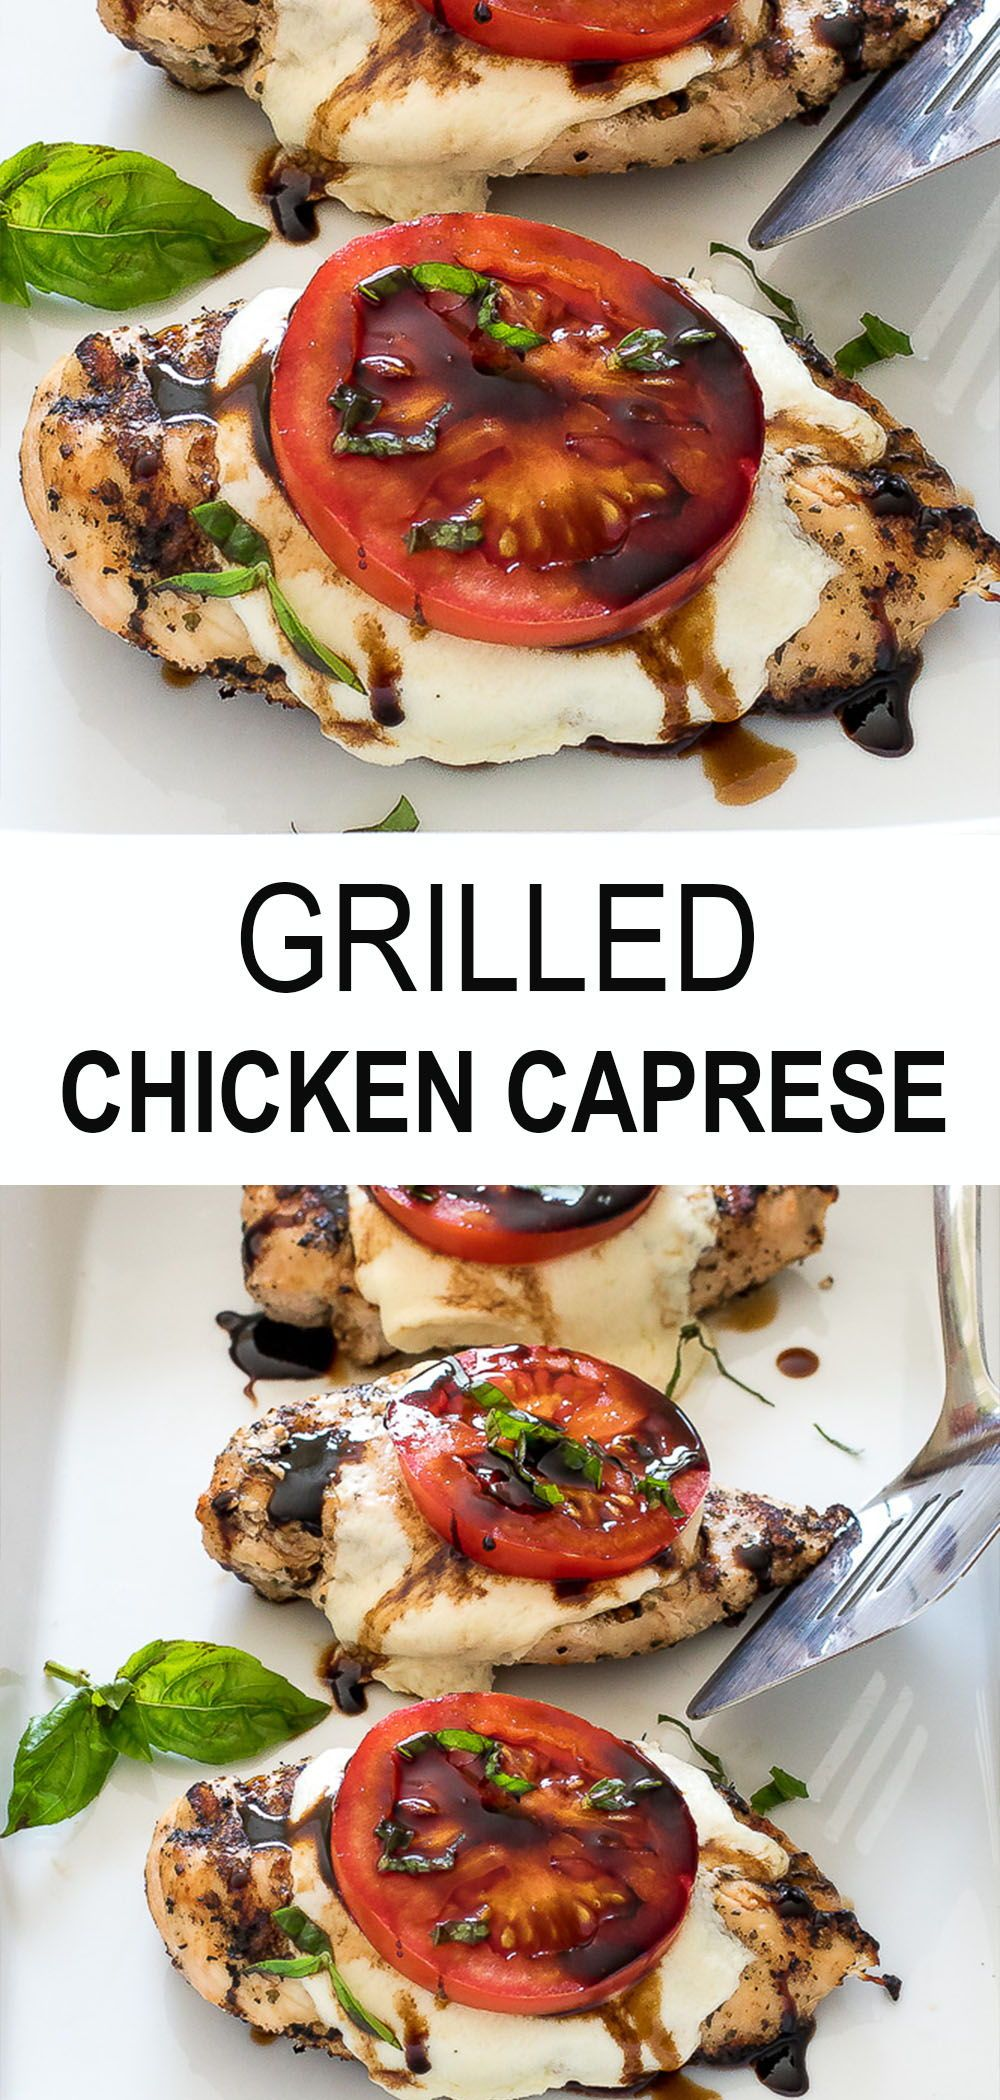 Grilled Chicken Caprese. Juicy chicken breast topped with mozzarella cheese, tomato, basil and a homemade balsamic reduction. This delicious weeknight dinner idea is ready in just 30 minutes. Perfect for the whole family - kids love it too! #caprese #chicken #grill #dinner